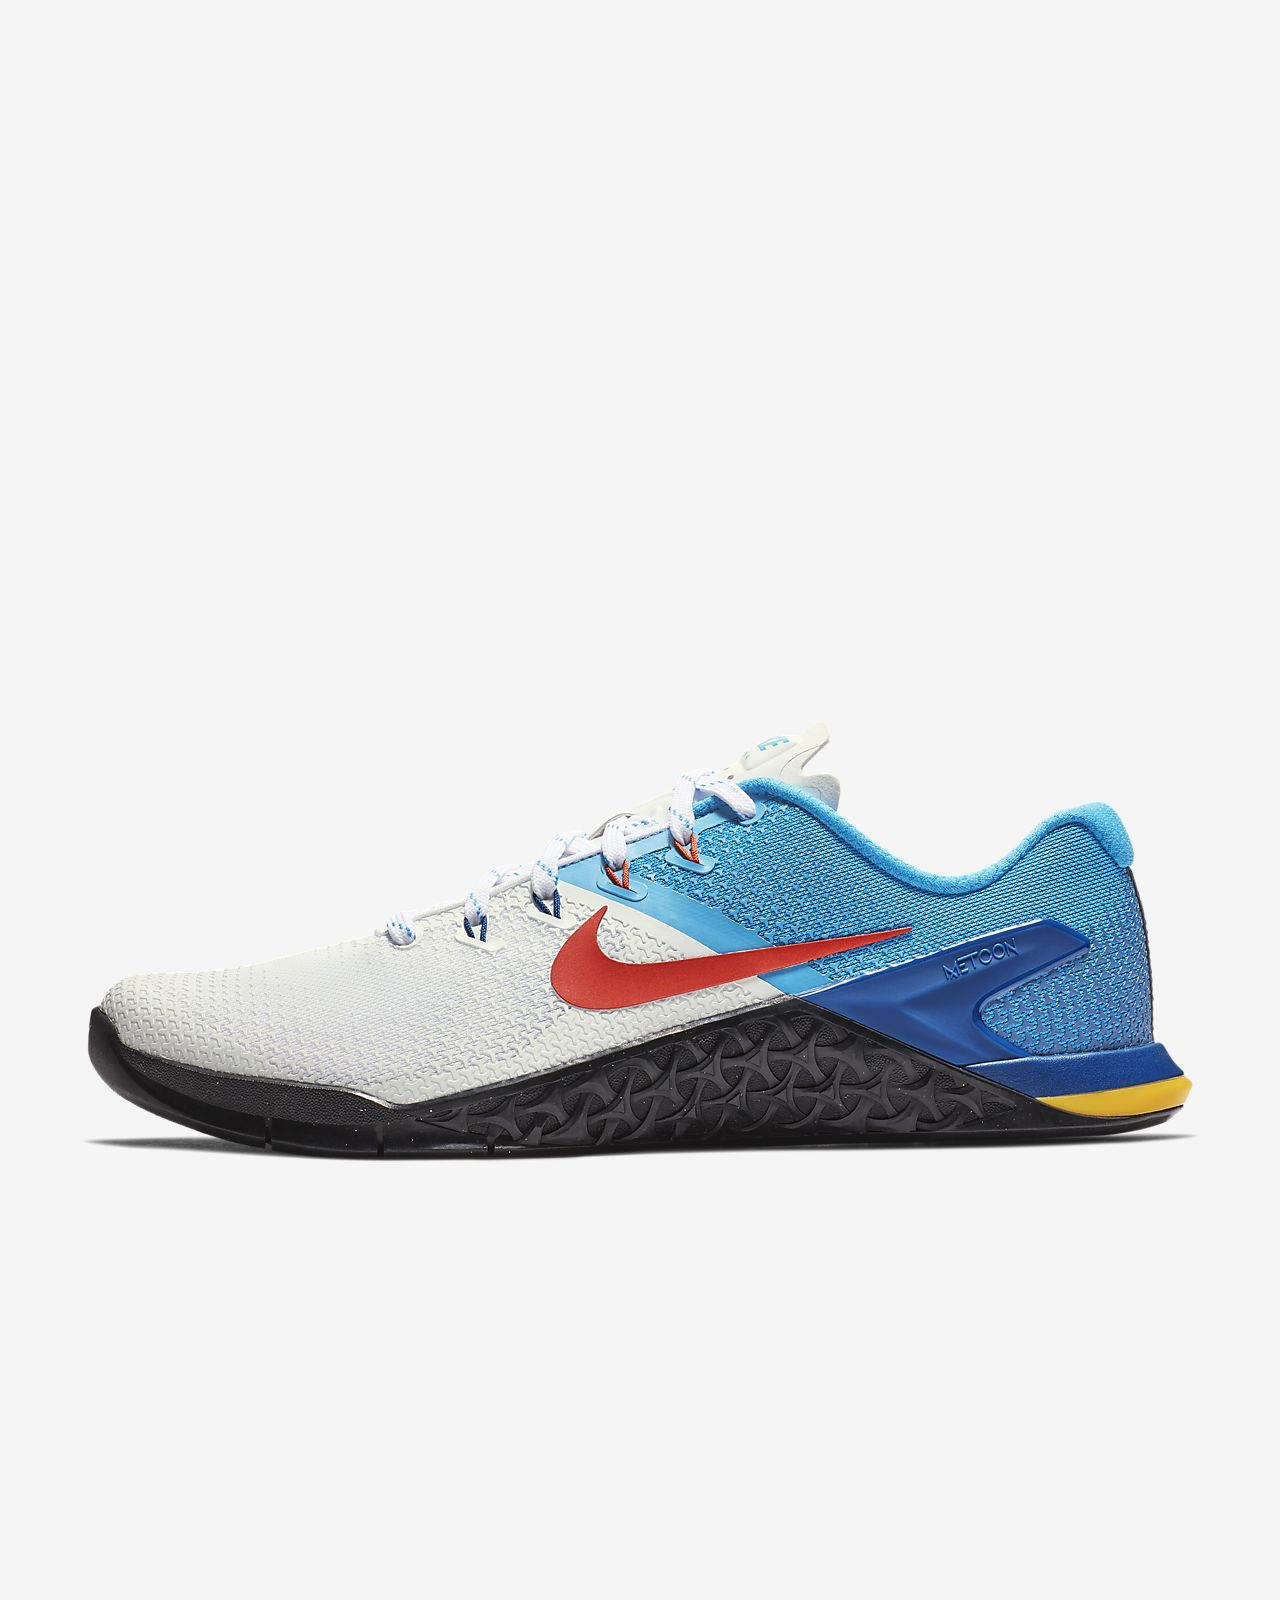 sports shoes d991a 02c0c ... release date nike metcon 4 mens cross training weightlifting shoe 1bb20  cfda9